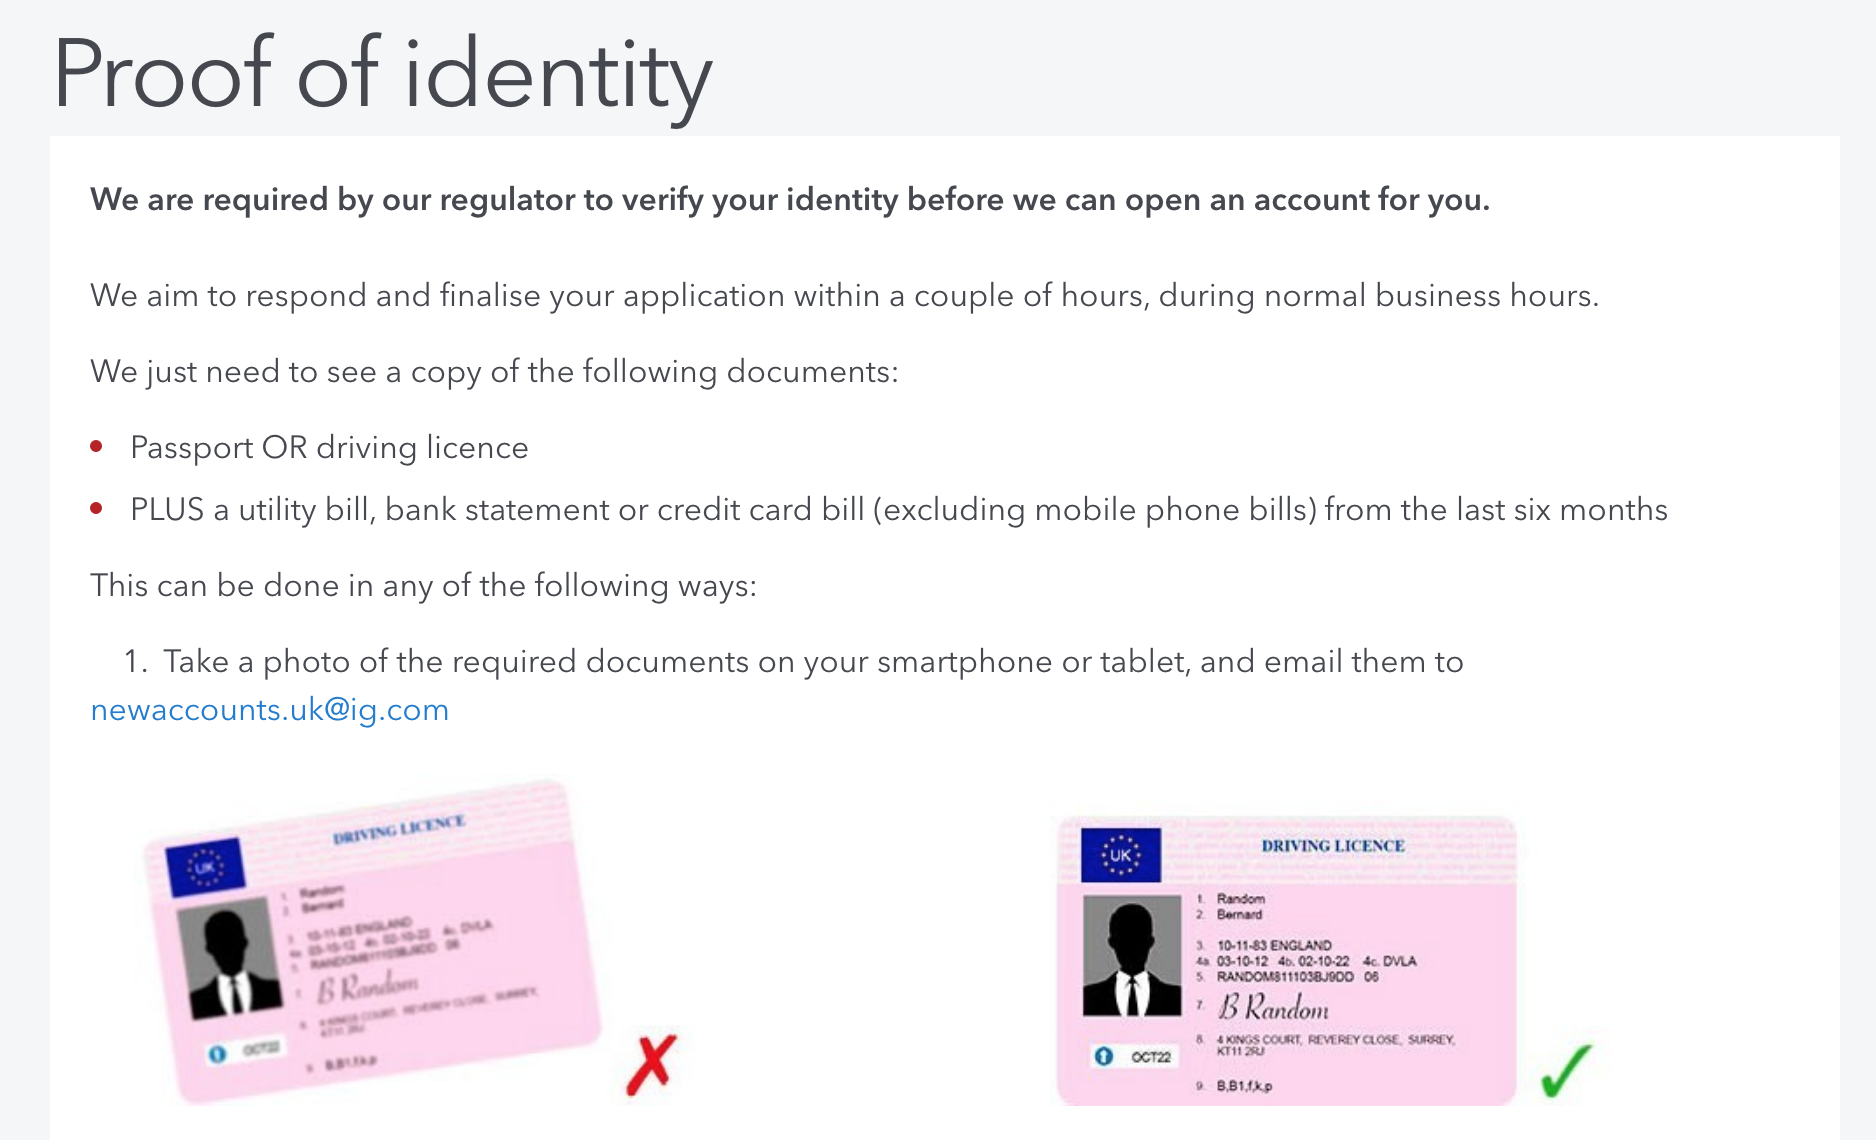 sample Proof of identity requirements